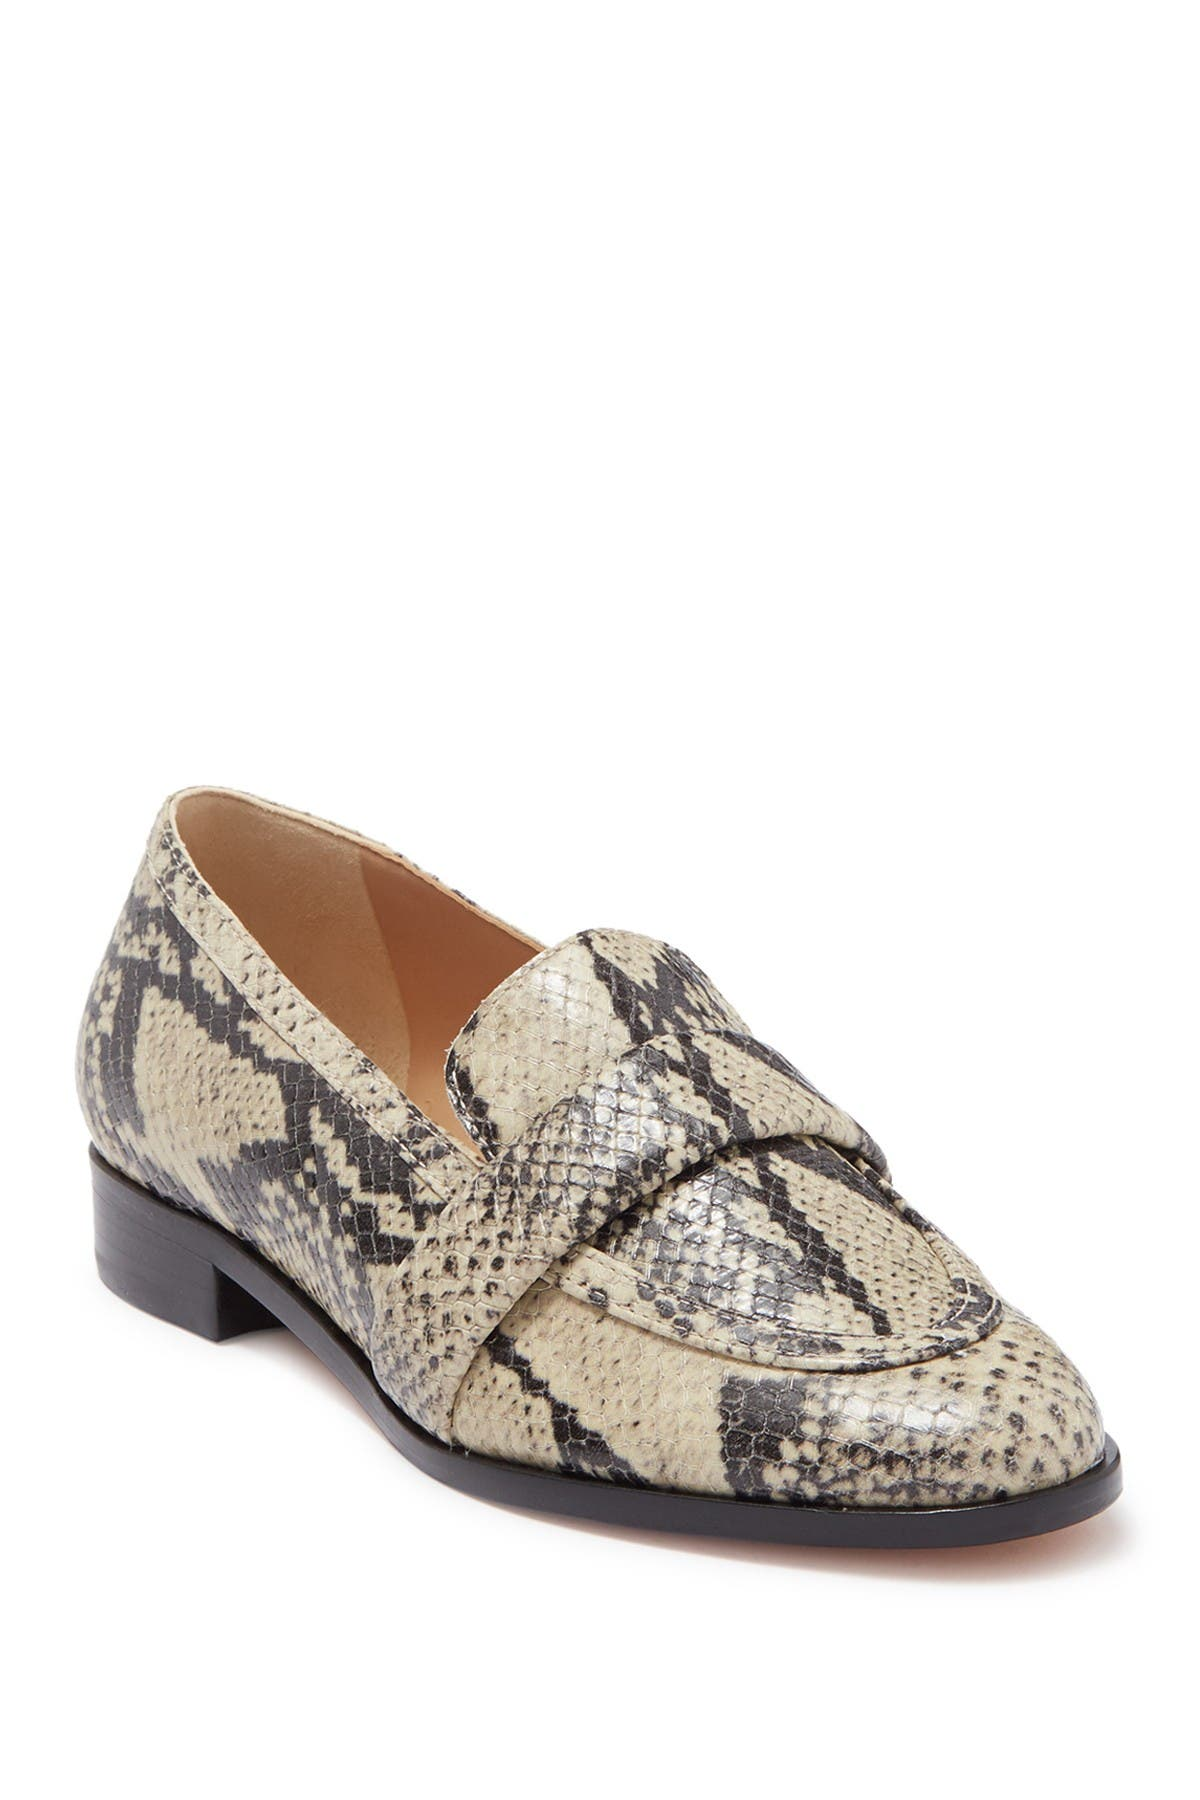 Image of Schutz Romina Snakeskin Embossed Loafer